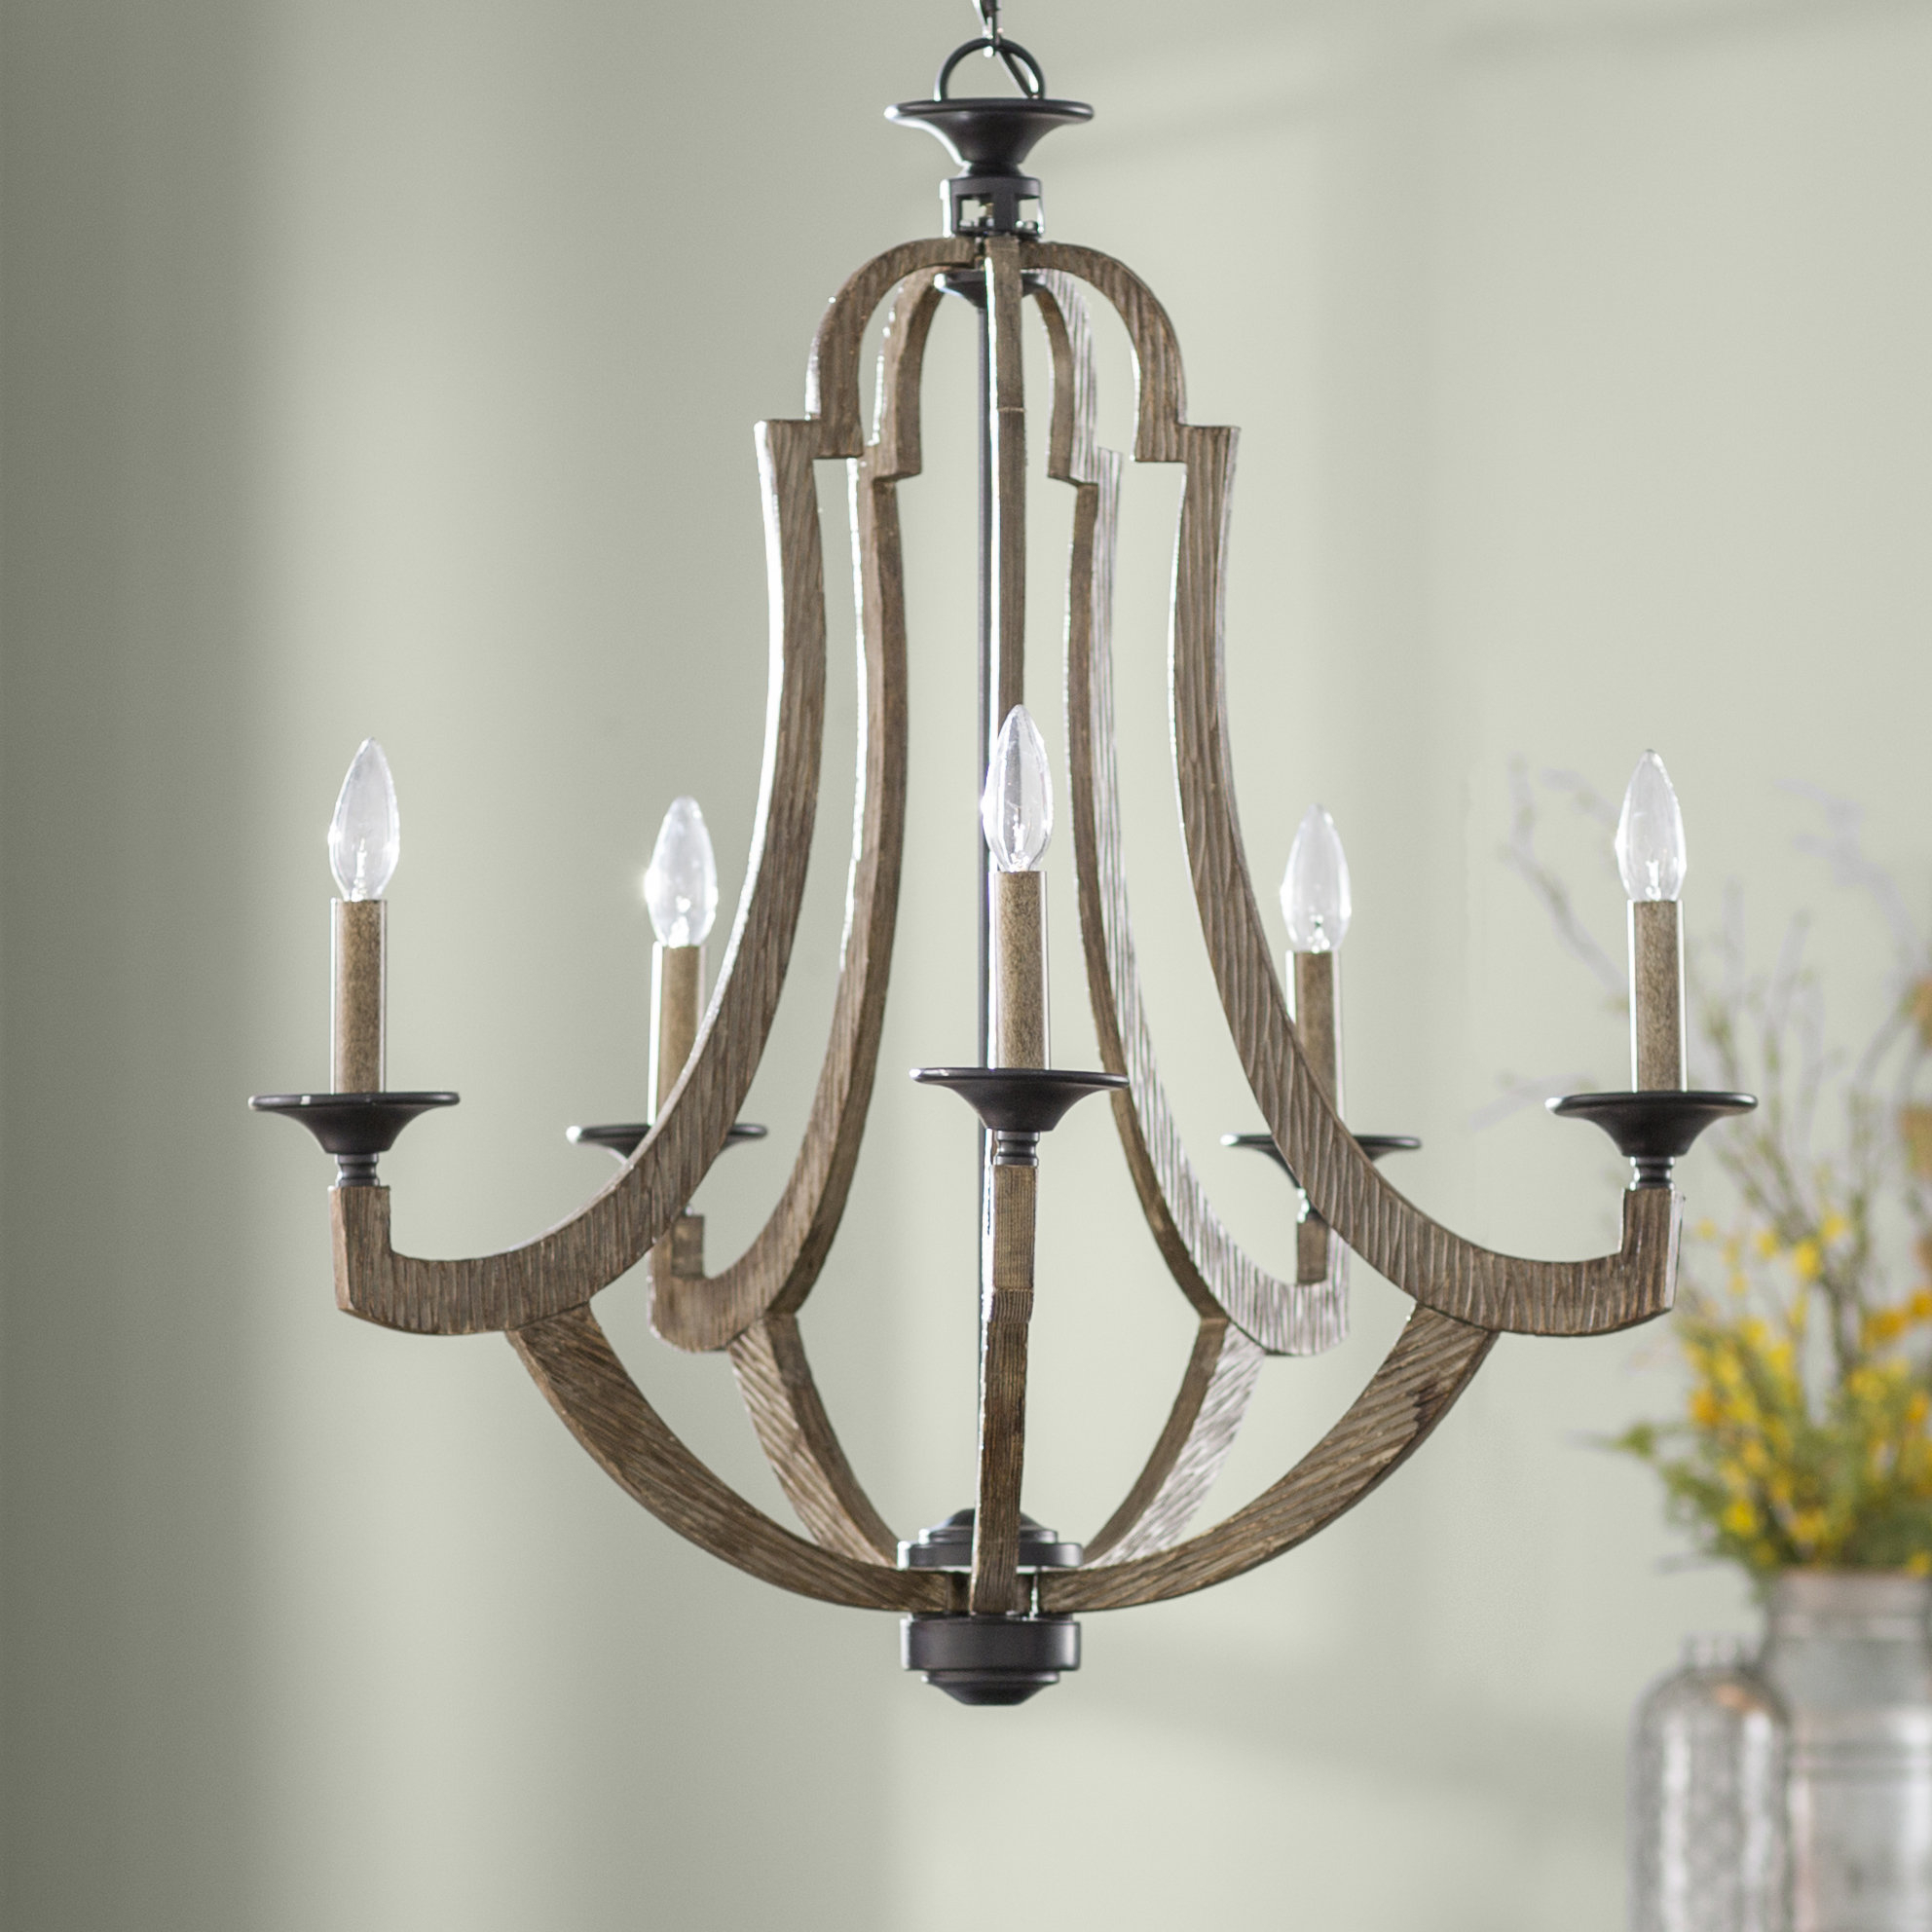 Laurel Foundry Modern Farmhouse Marcoux 5 Light Empire Chandelier In Duron 5 Light Empire Chandeliers (View 16 of 30)